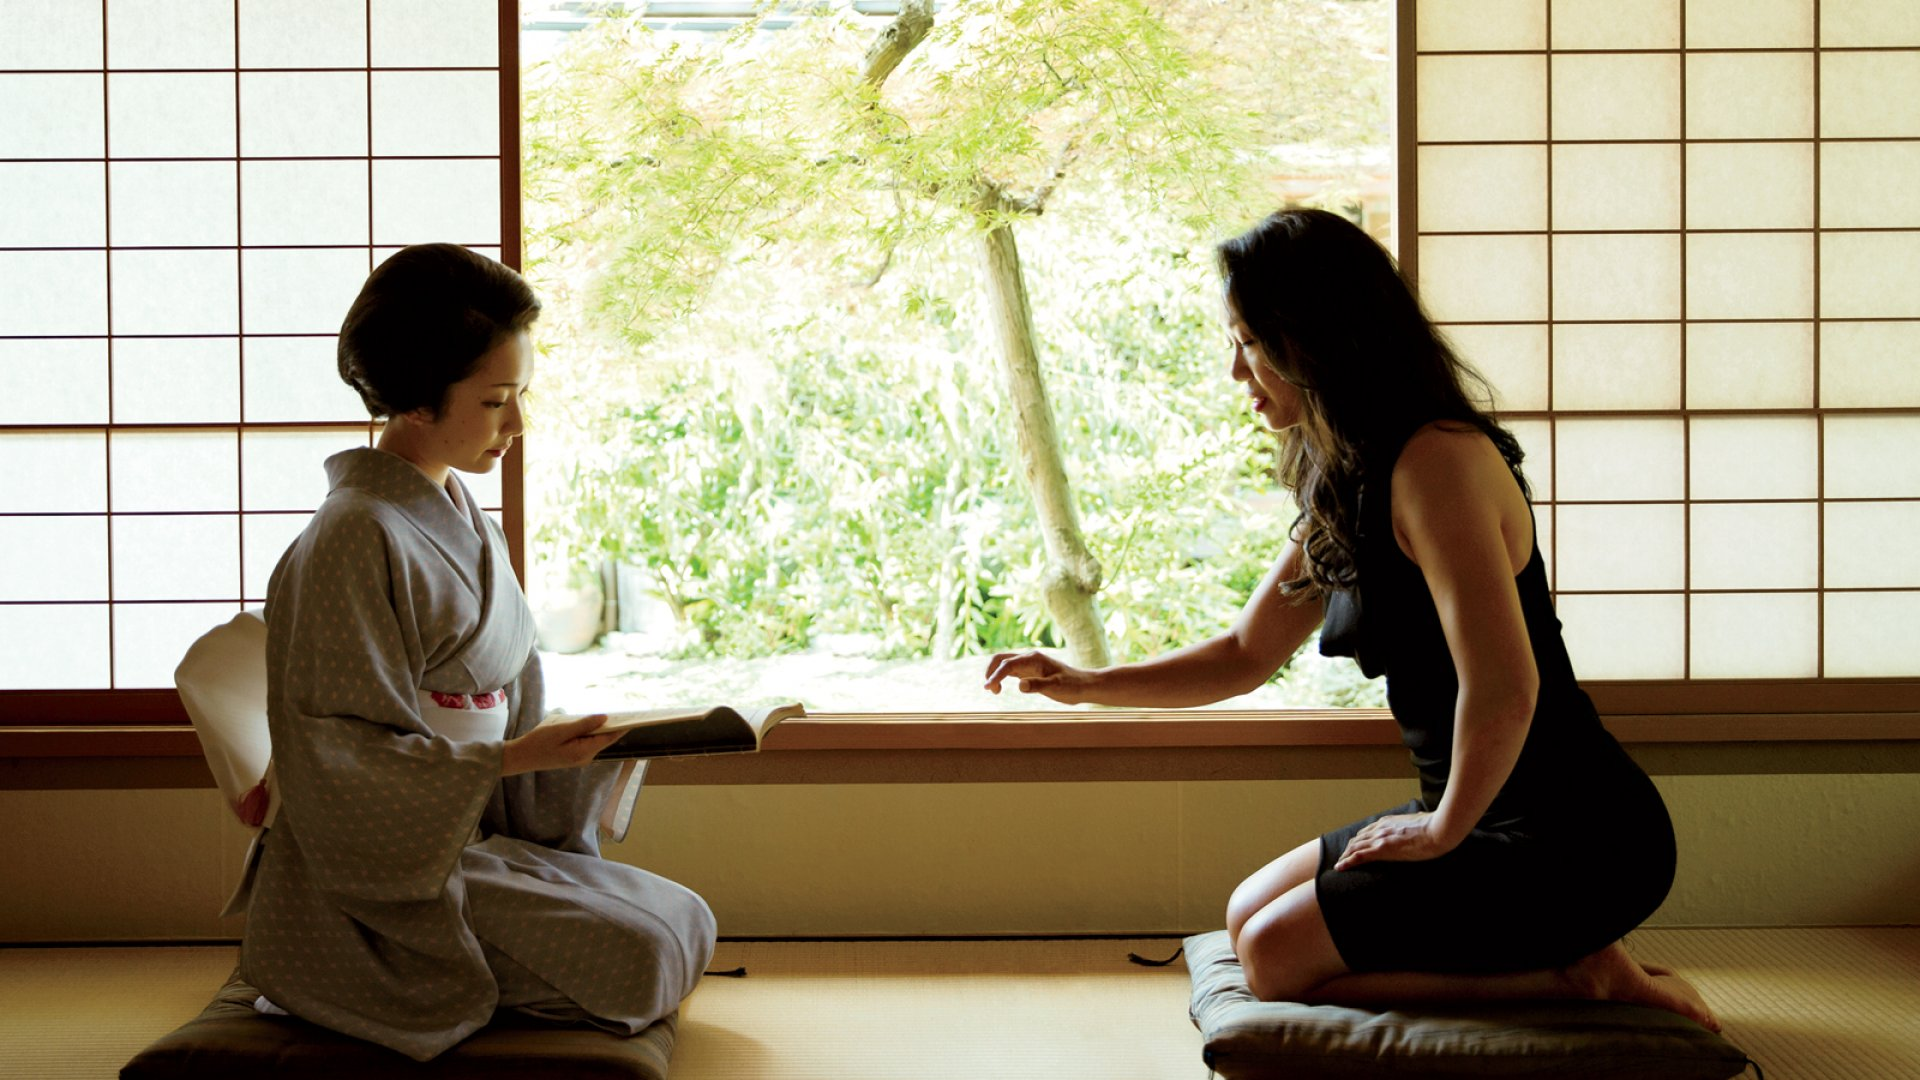 Vicky Tsai (right) and geisha Toshimana discussing beauty rituals at a ryokan-a traditional Japanese guesthouse.